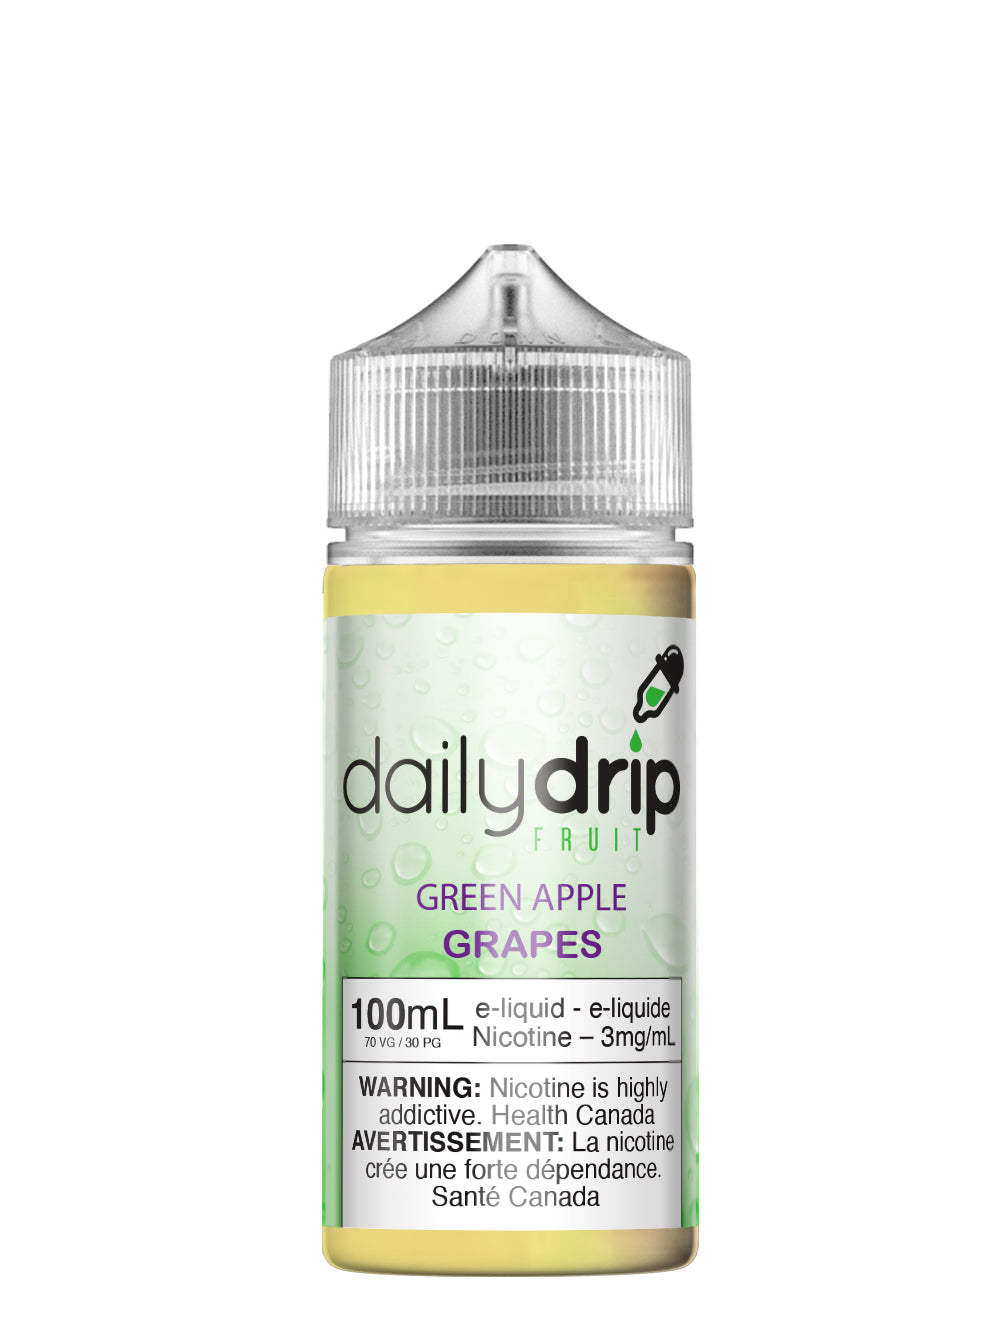 Green Apple Grapes by Daily Drip 100ml